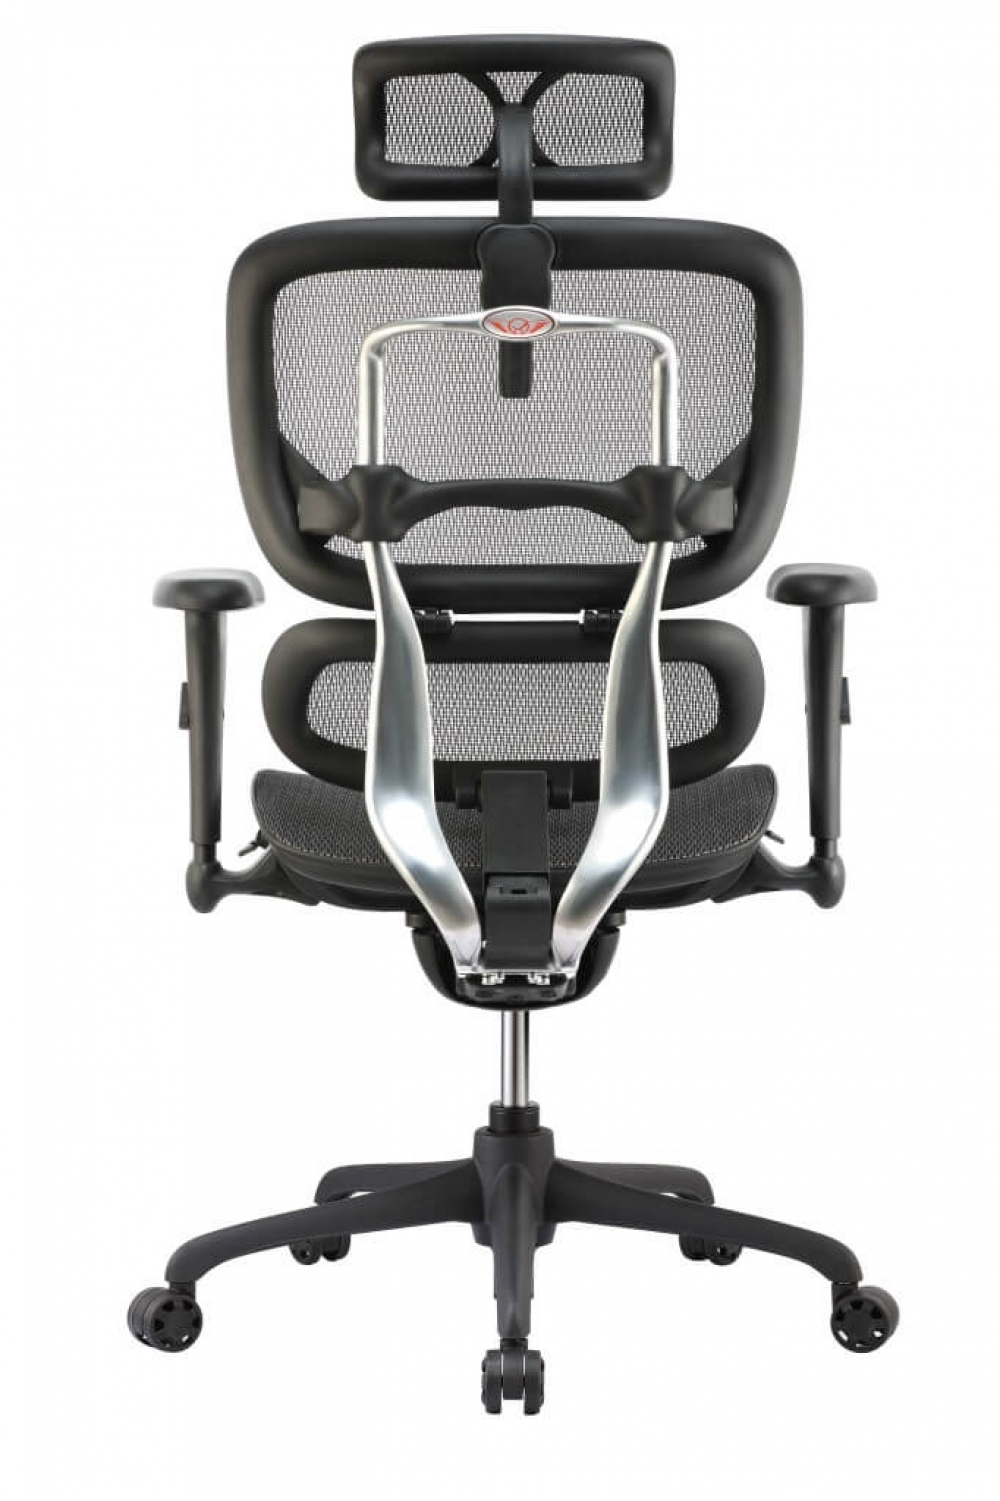 High back office chairs rear view